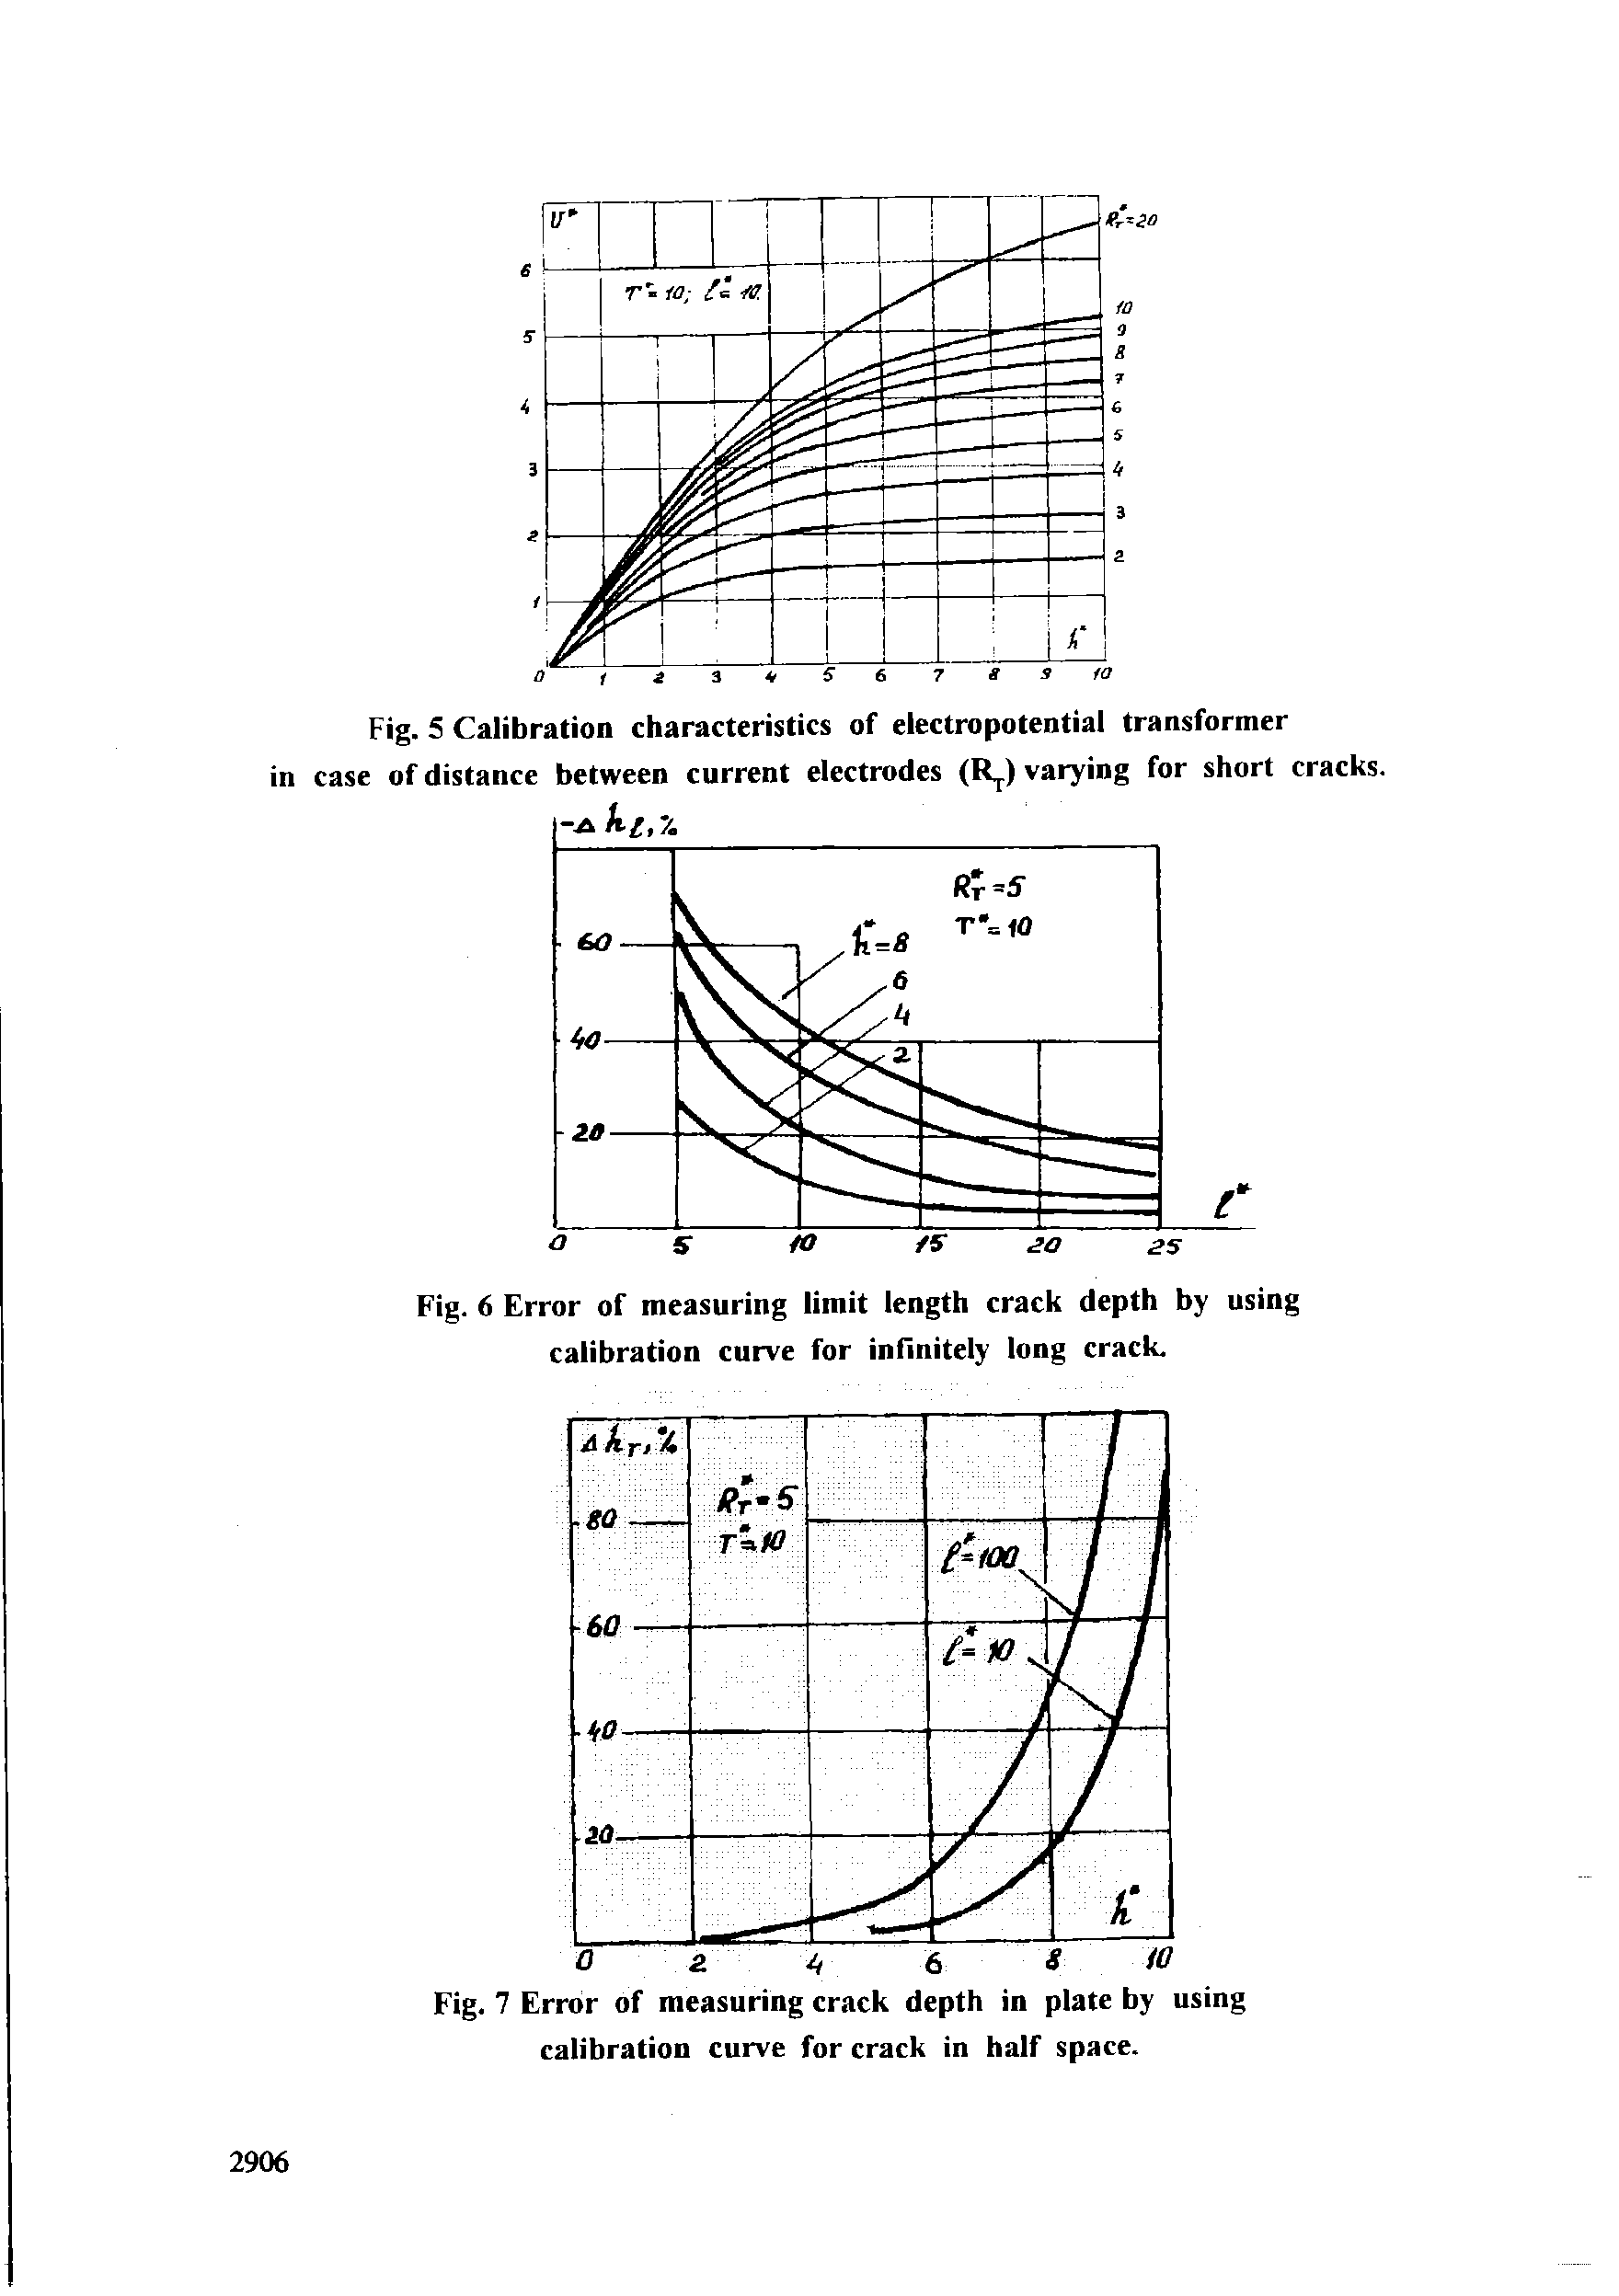 Fig. 7 Error of measuring crack depth in plate by using calibration curve for crack in half space.